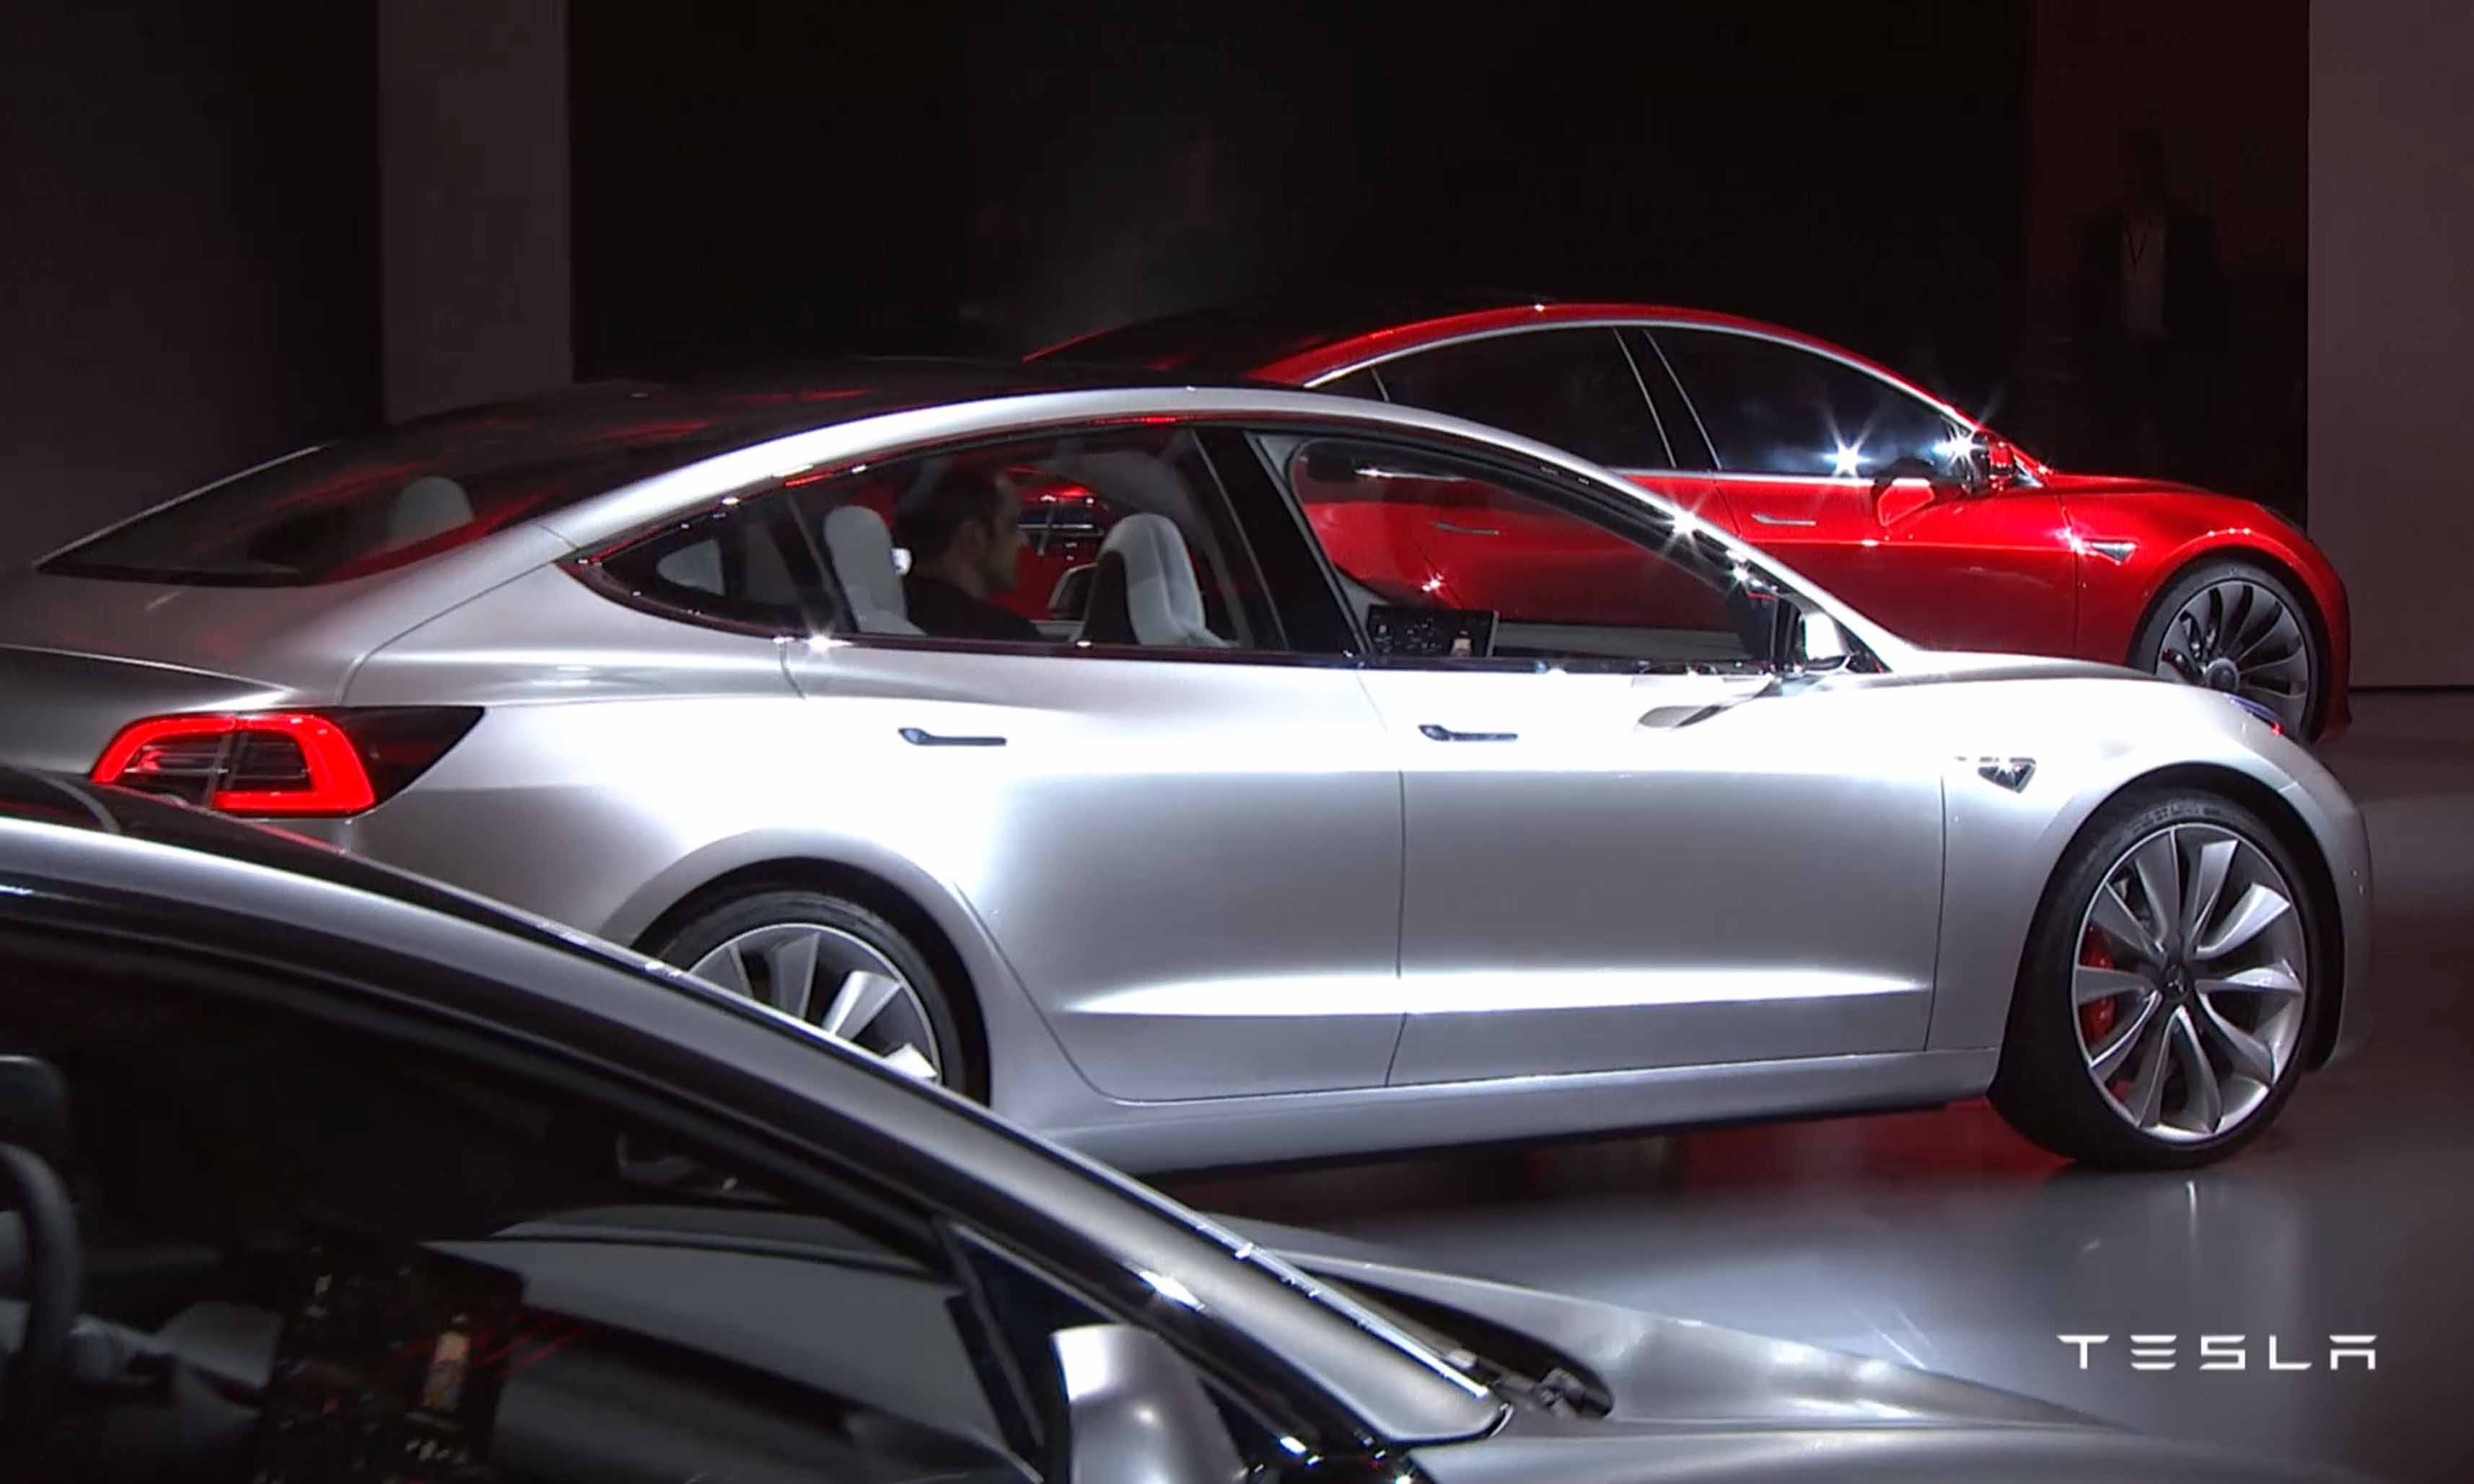 blogg 20160104 tesla model3 bak side